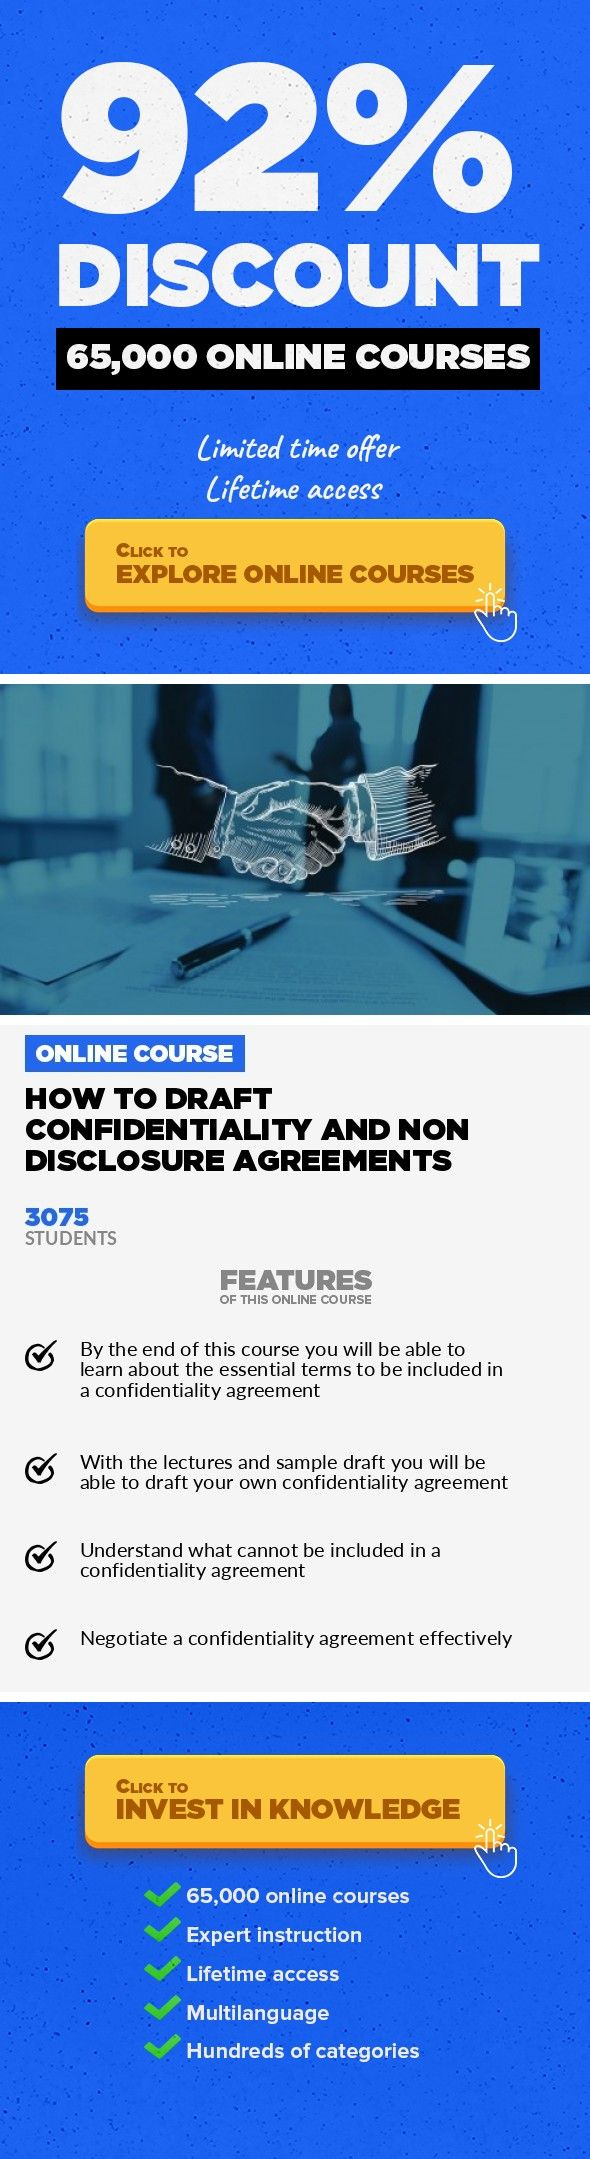 How To Draft Confidentiality And Non Disclosure Agreements Business